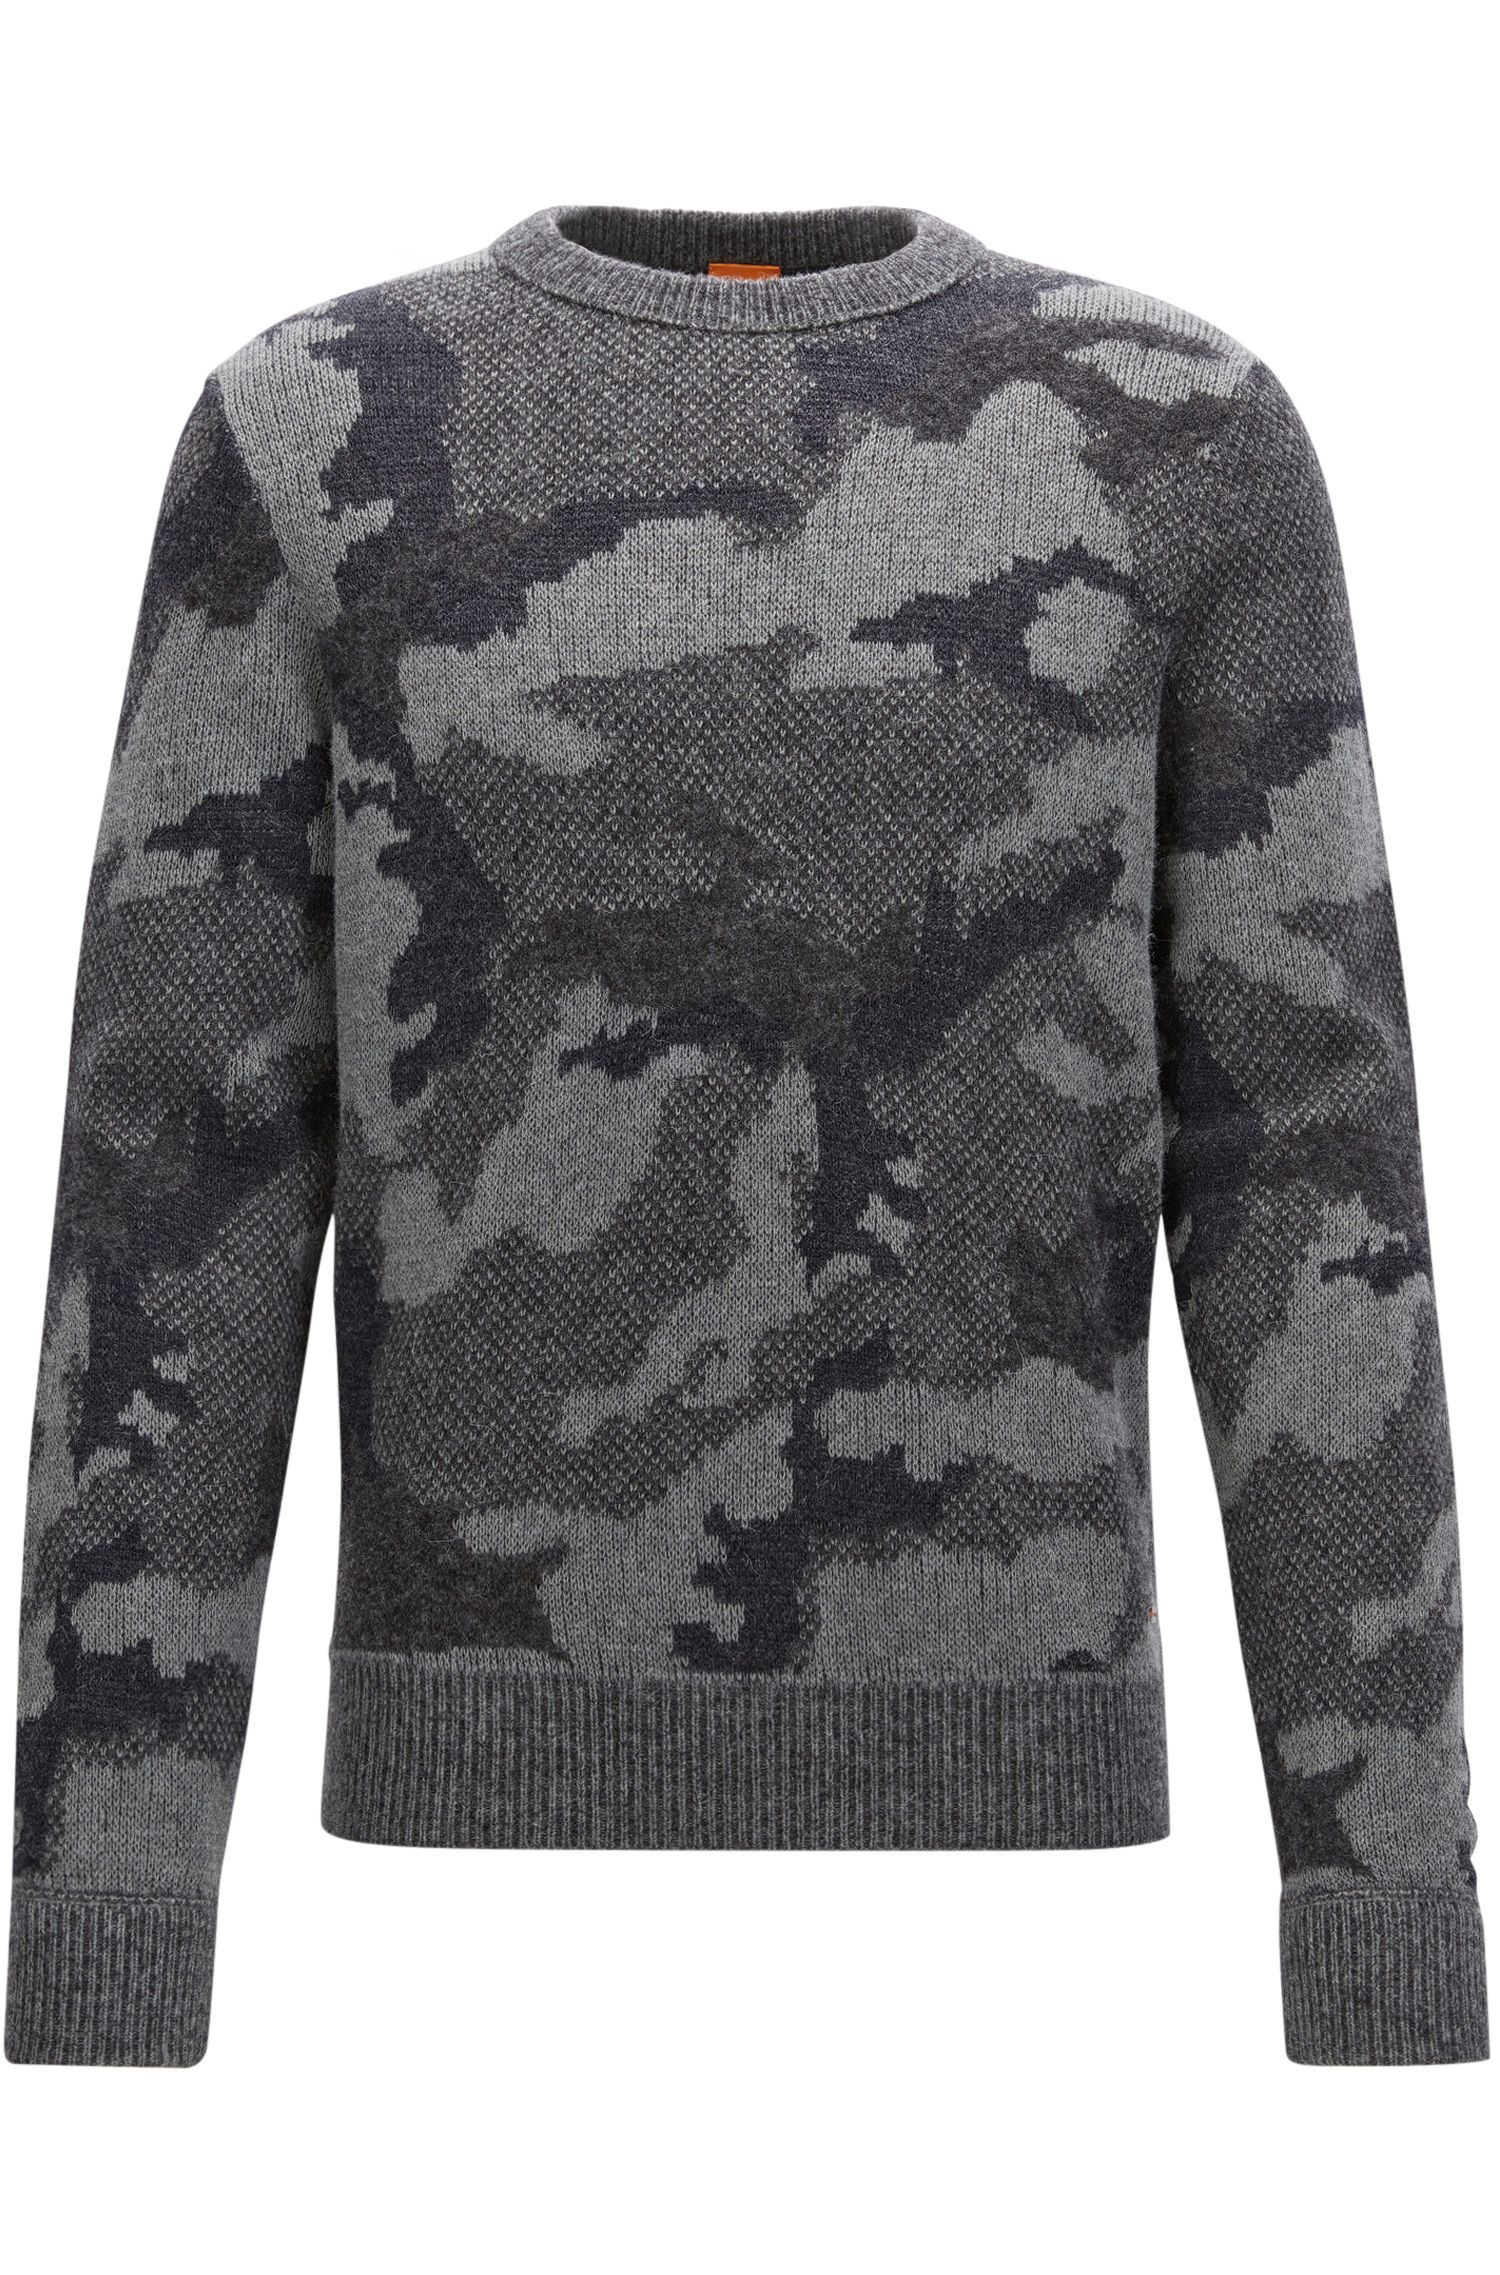 Knitted sweater with 3D camouflage pattern